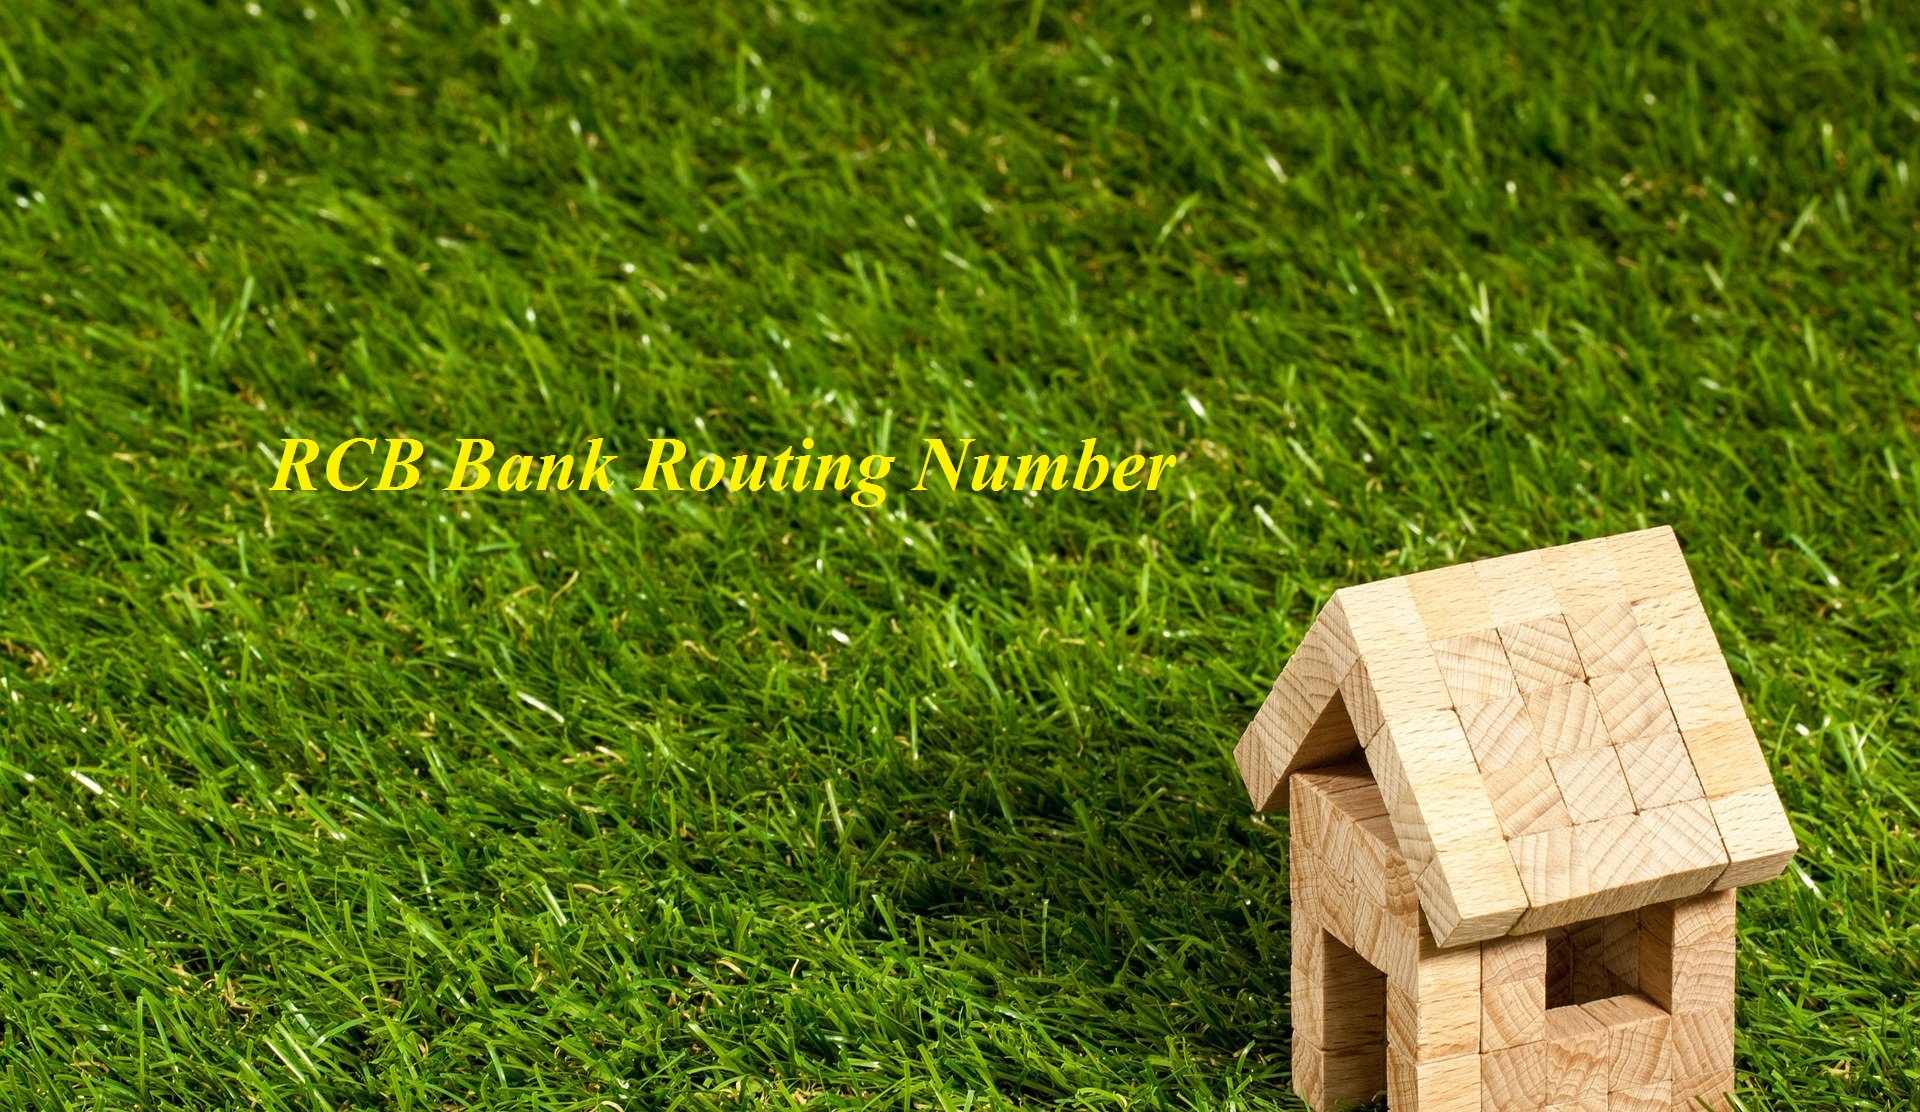 RCB Bank Routing Number